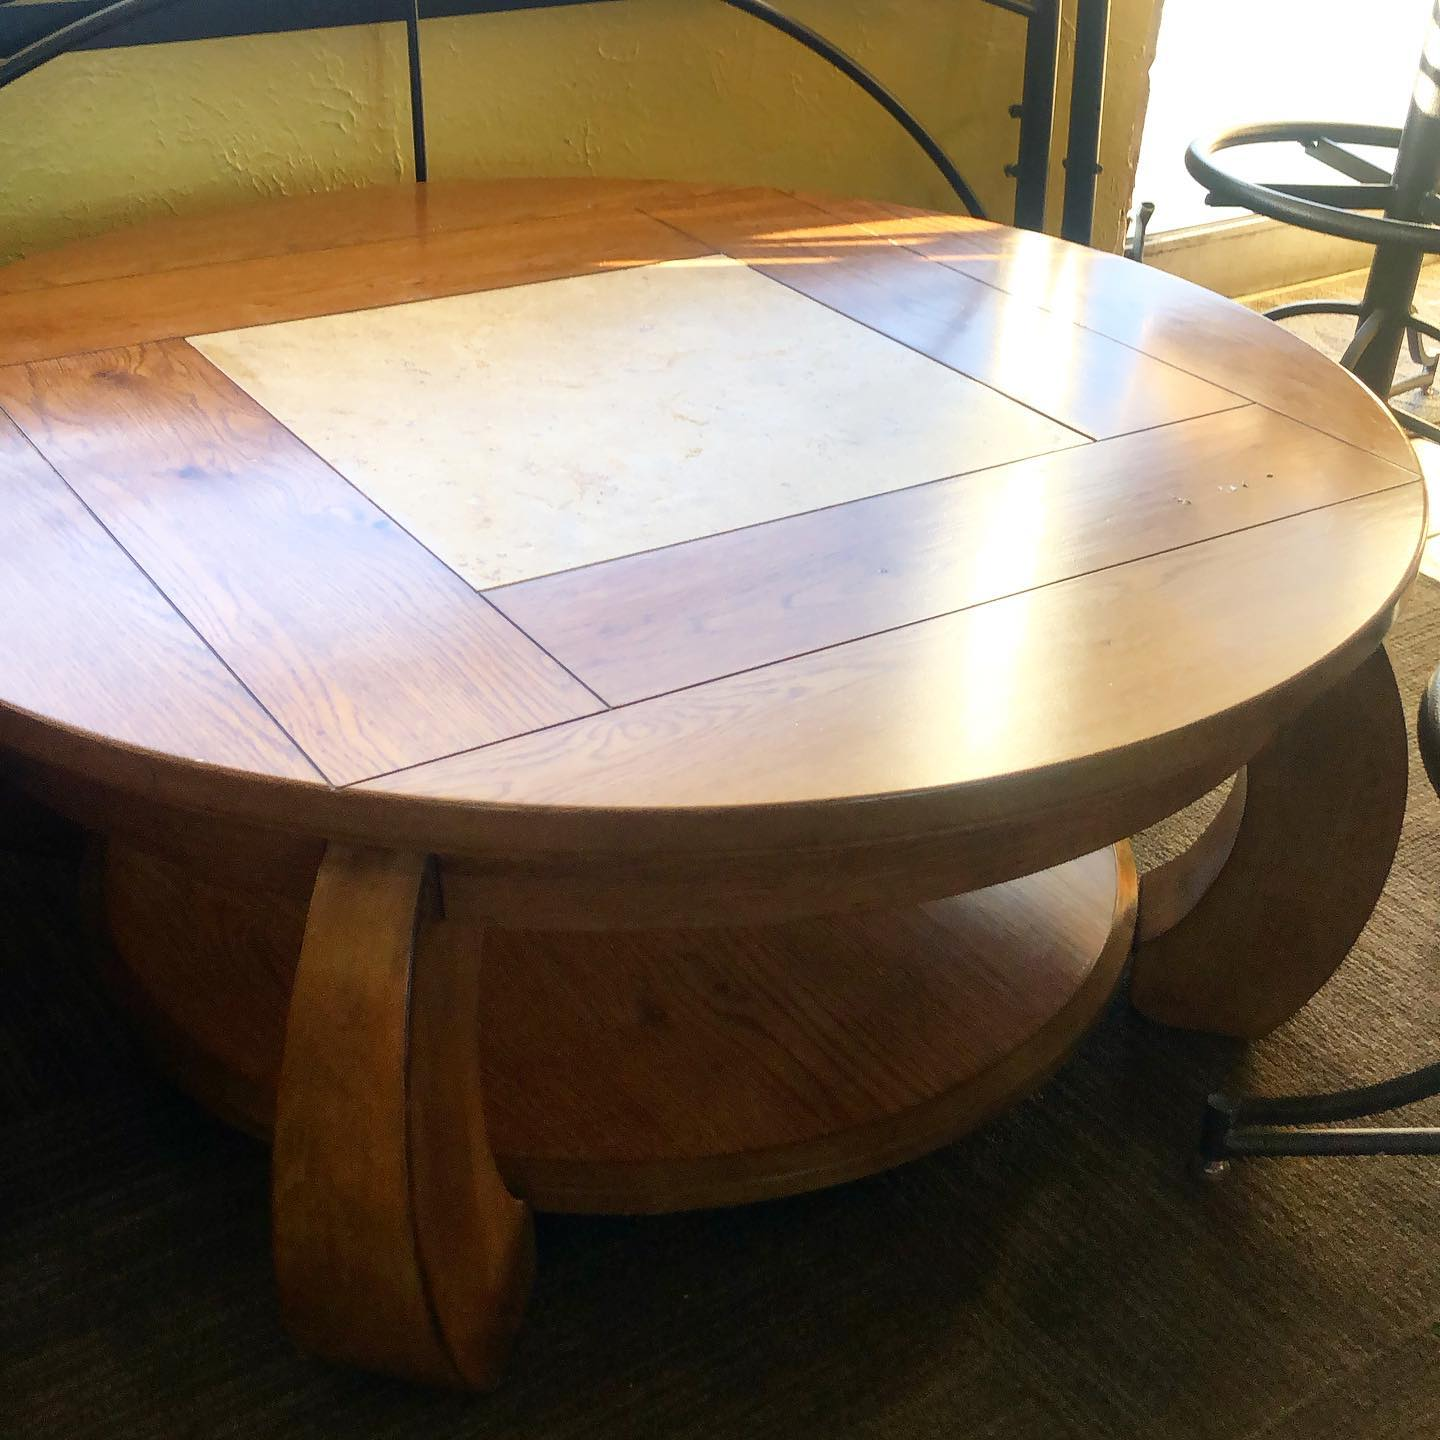 42 Inch Coffee table